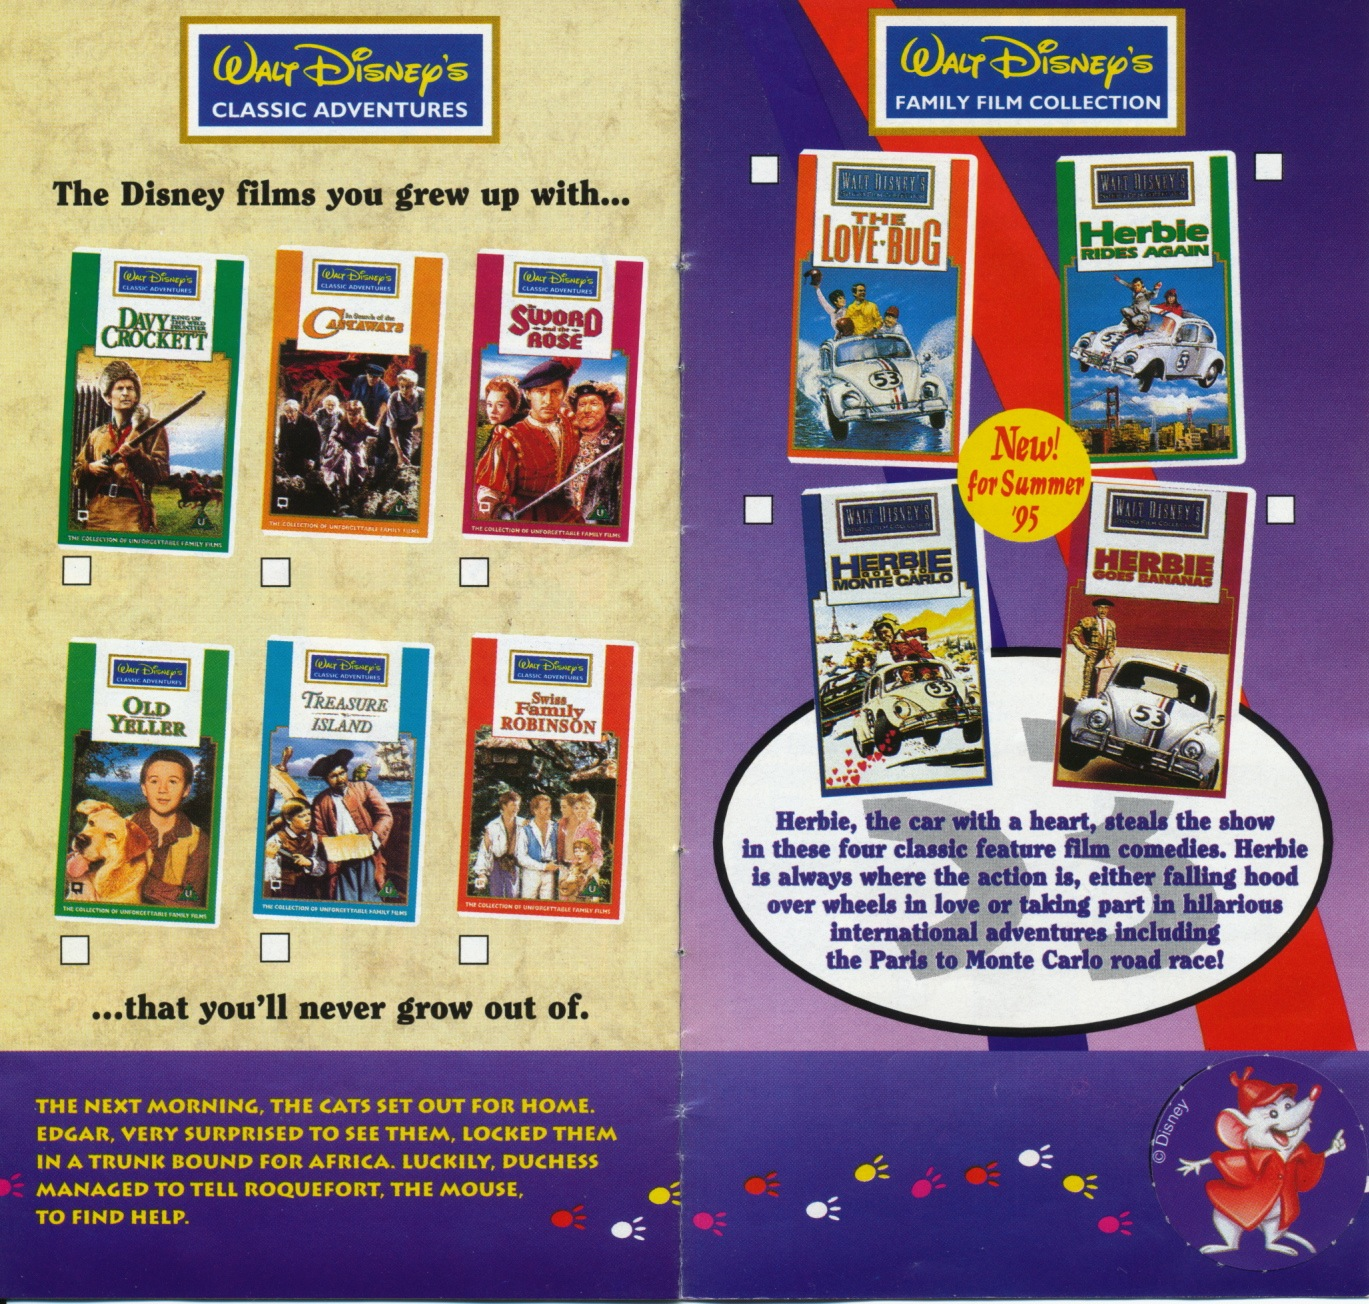 Heres What Your Disney VHS Tapes Are Really Worth Heres What Your Disney VHS Tapes Are Really Worth new pictures